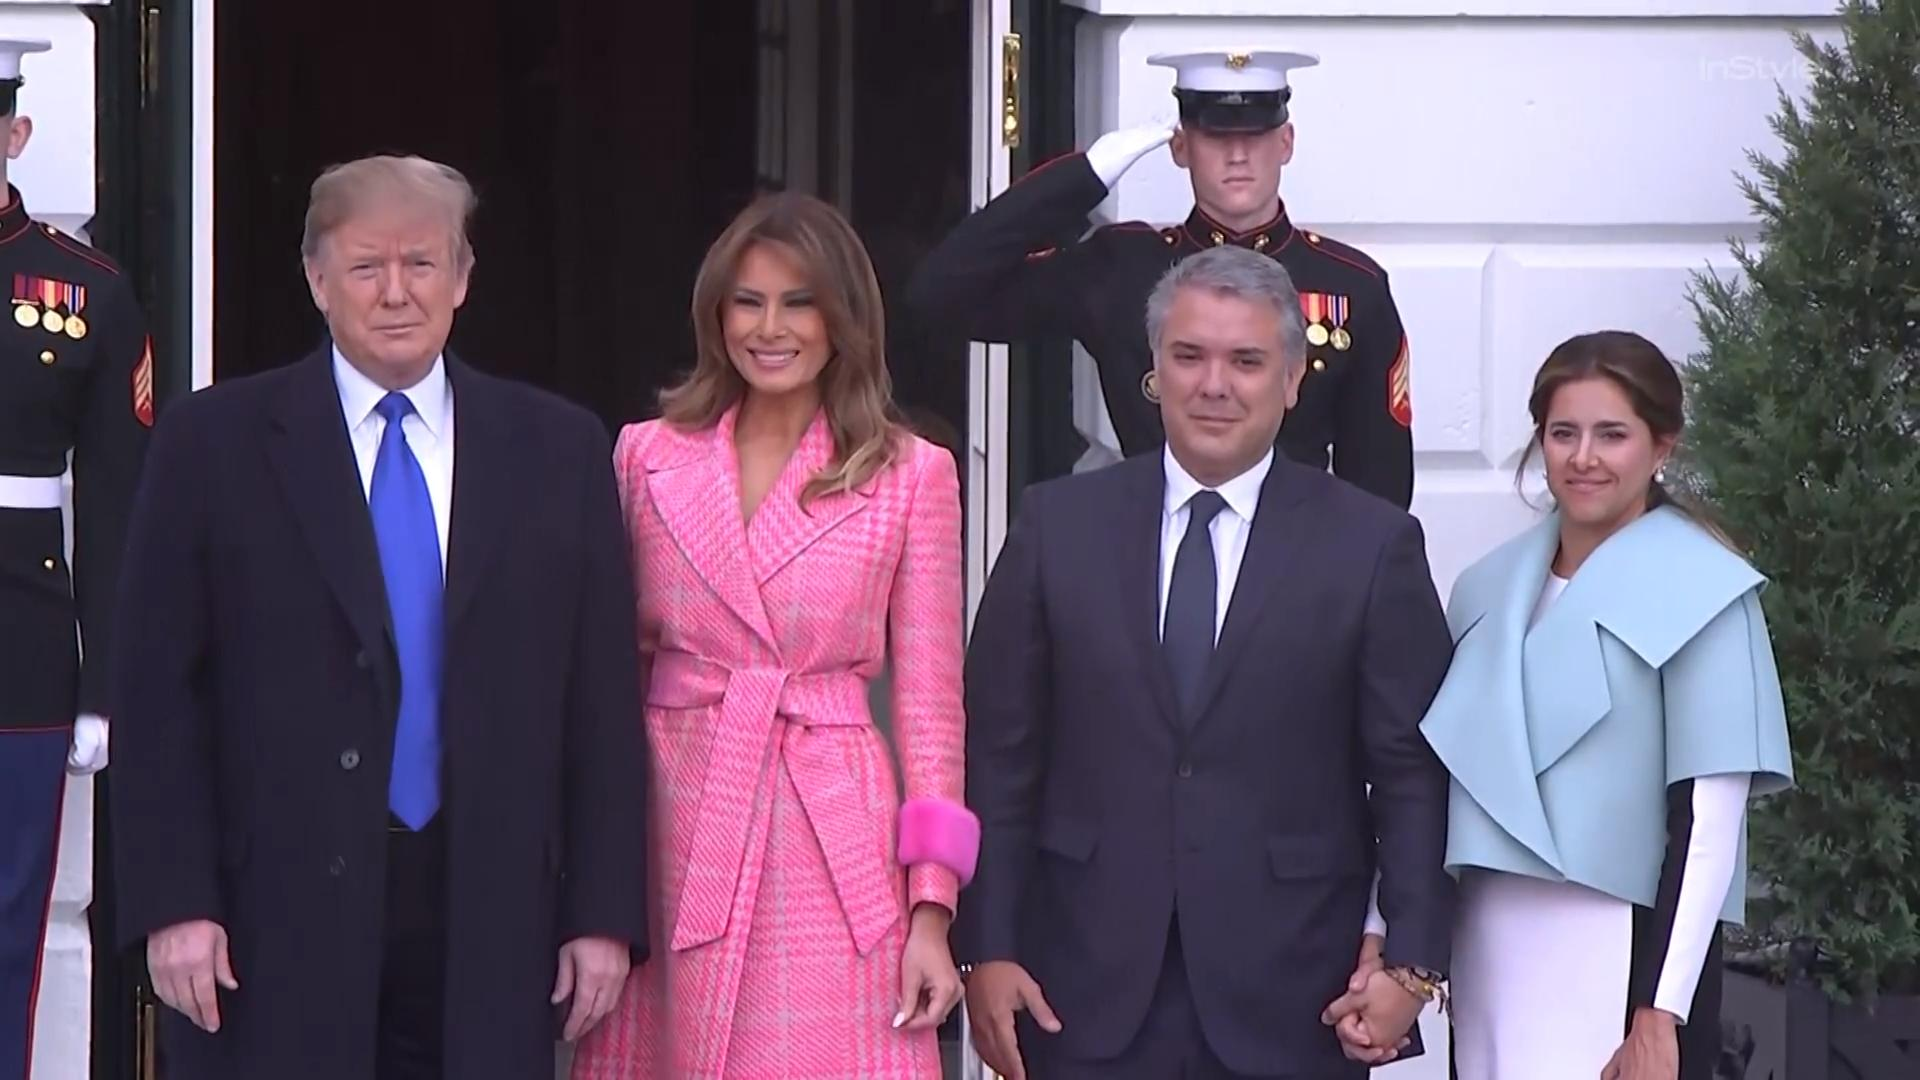 Melania Trump Either Wore a Very Expensive Pink Coat or a Bathrobe